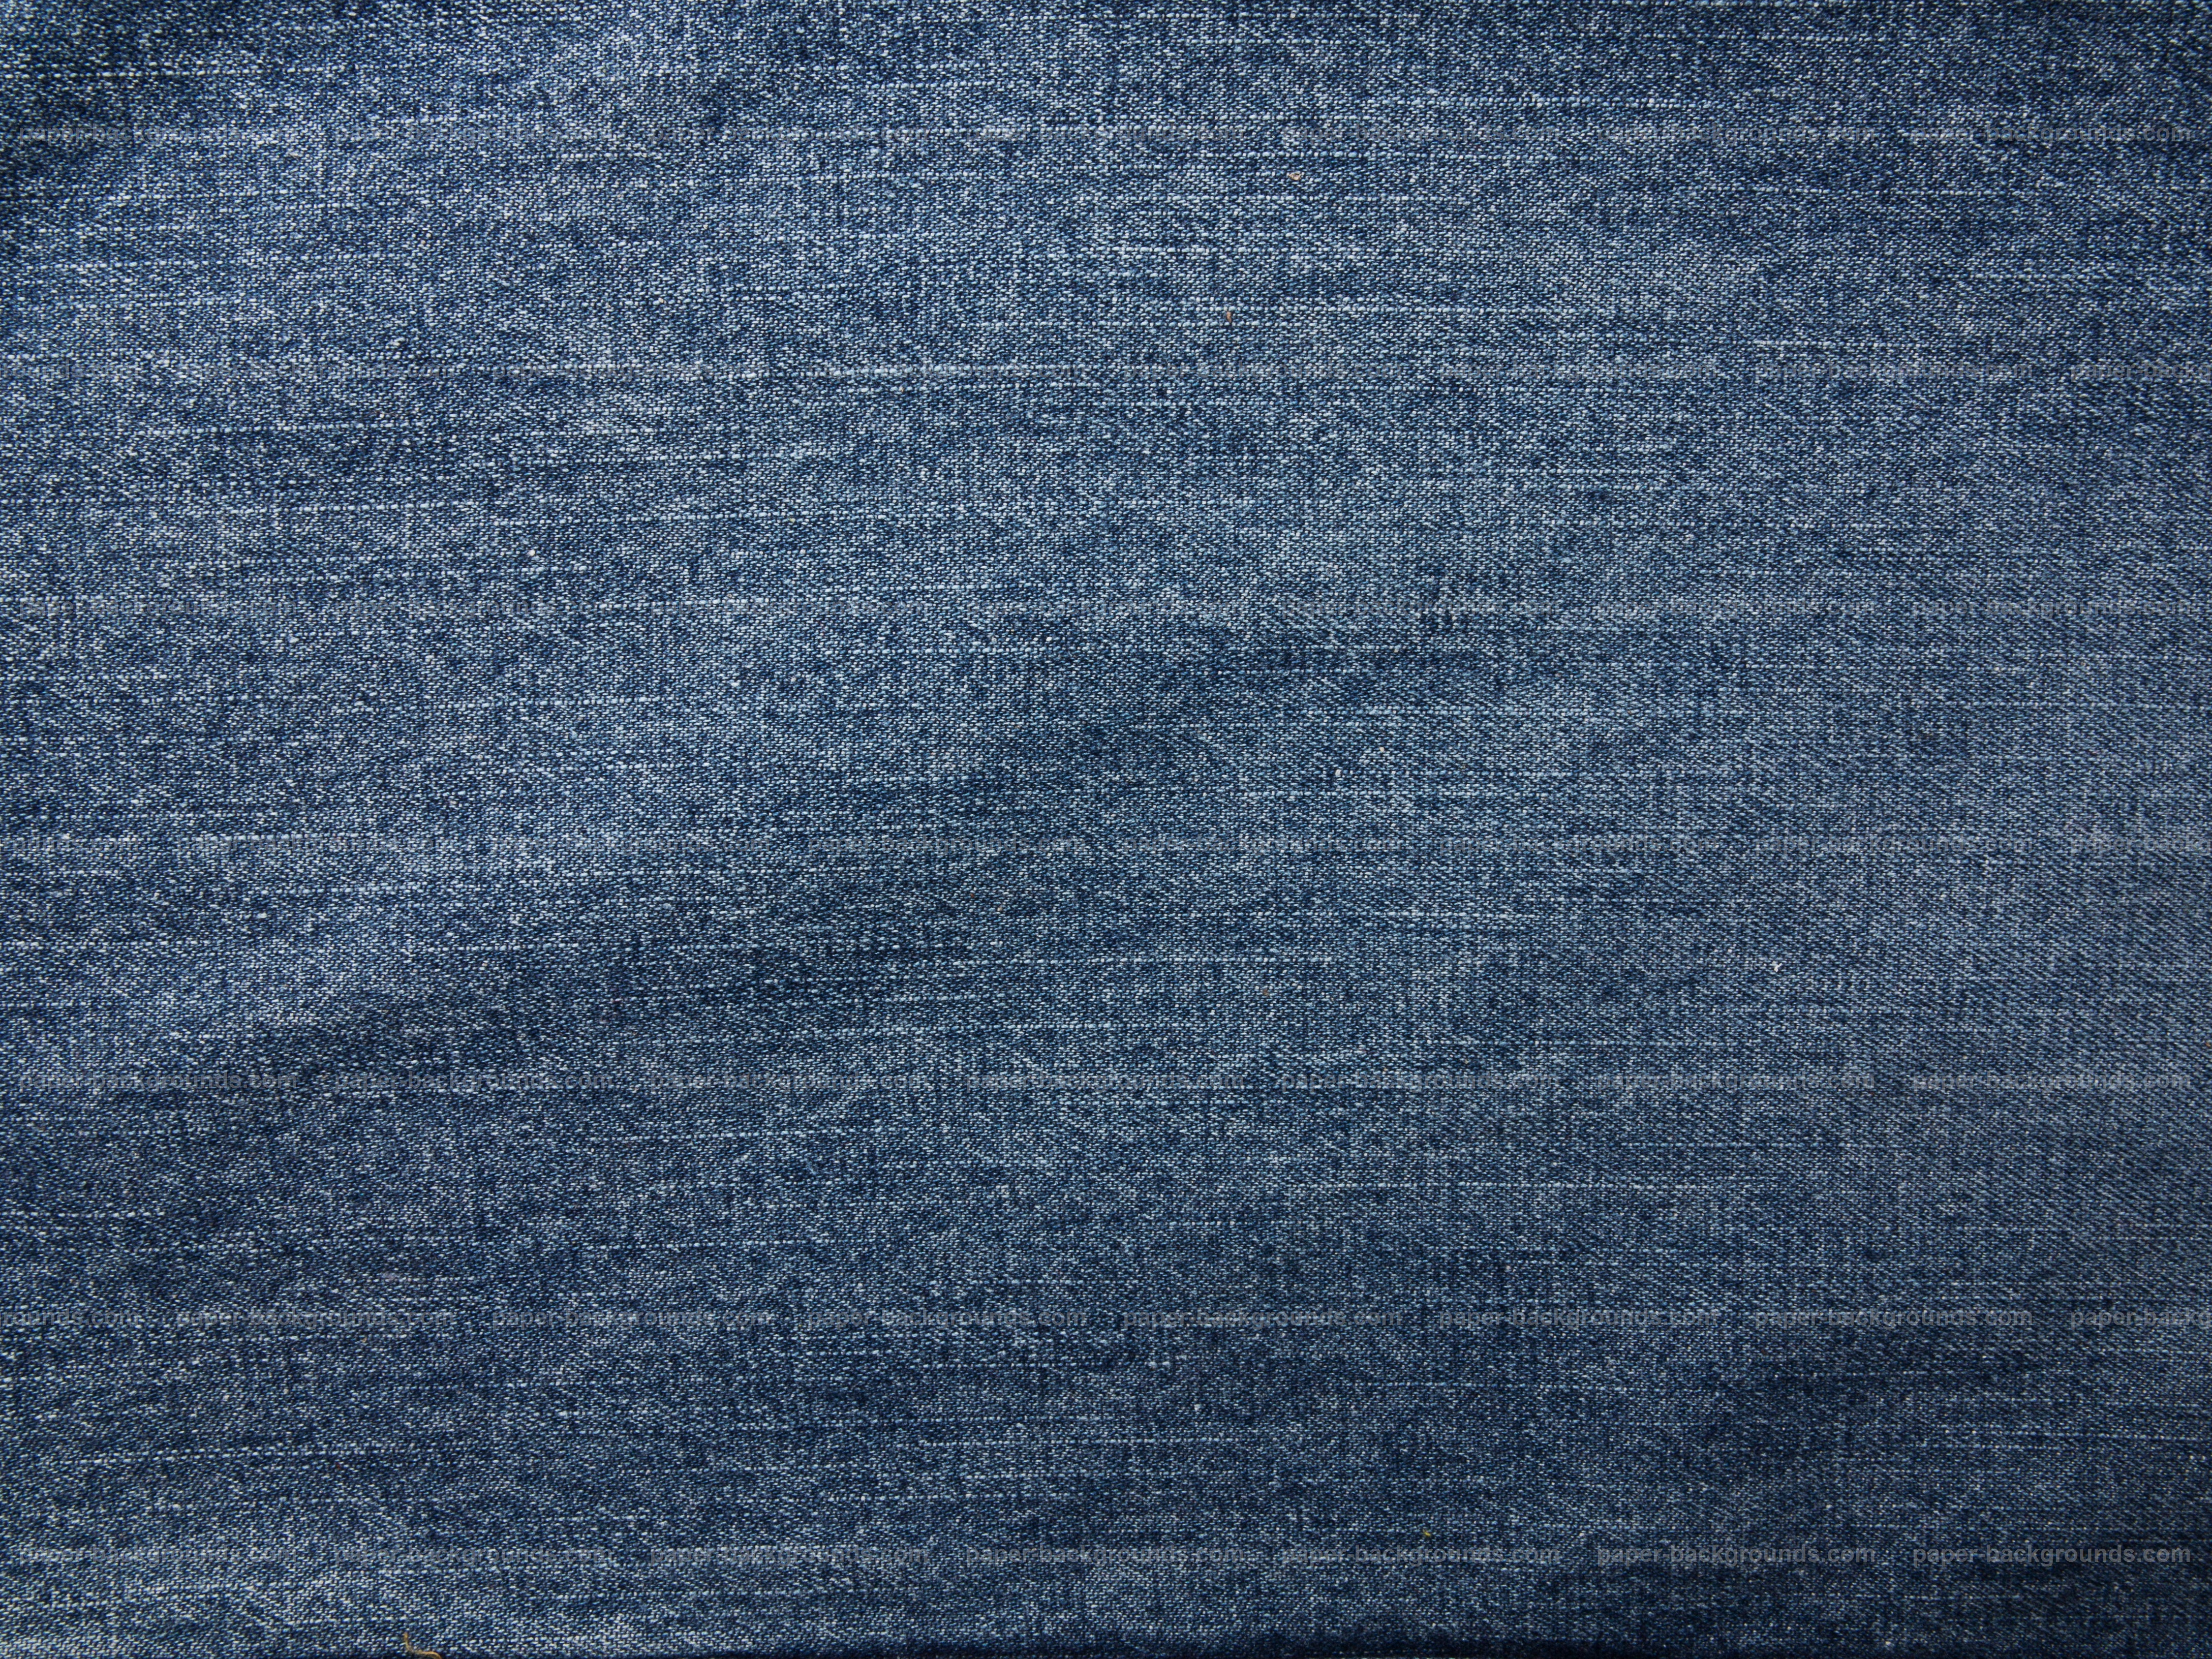 Paper Backgrounds | Vintage Blue Jeans Fabric Texture Background High Resolution